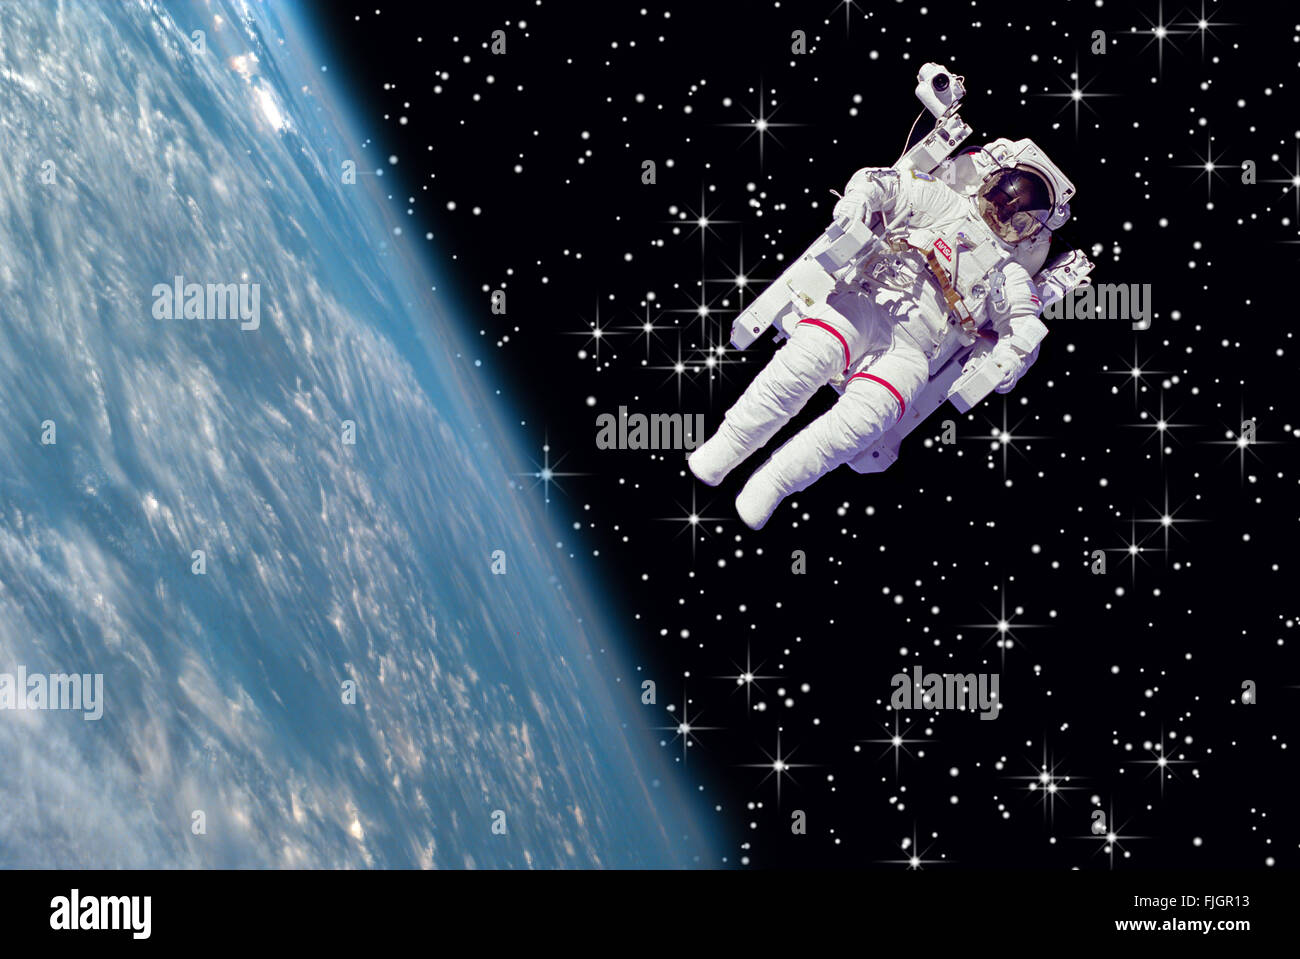 NASA image astronaut earth floating space stars - Stock Image